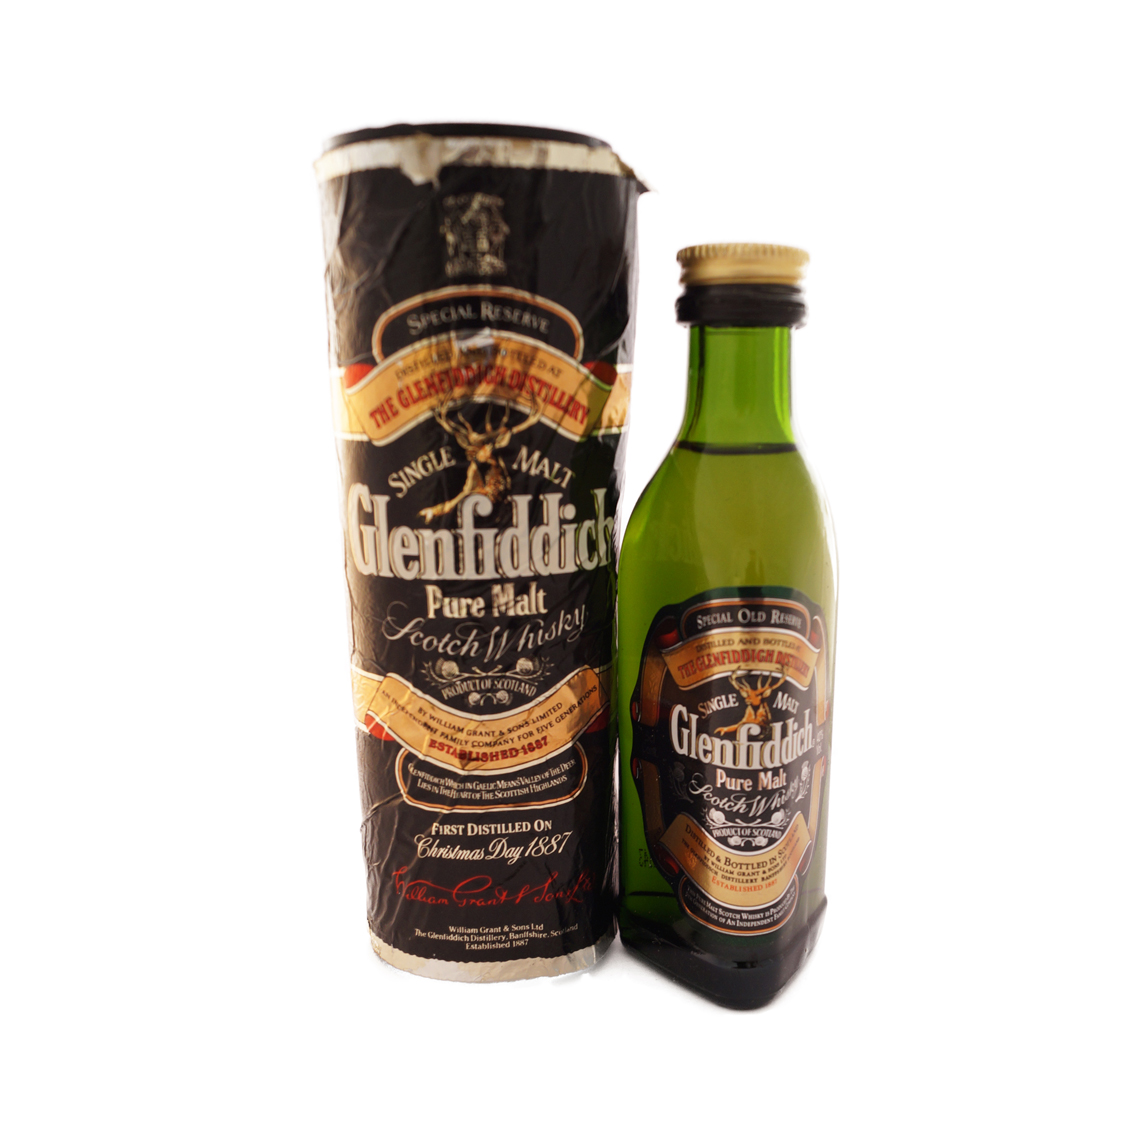 WHISKY-GLENFIDDICH-PMSW-SPECIAL-OLD-RESERVE-1